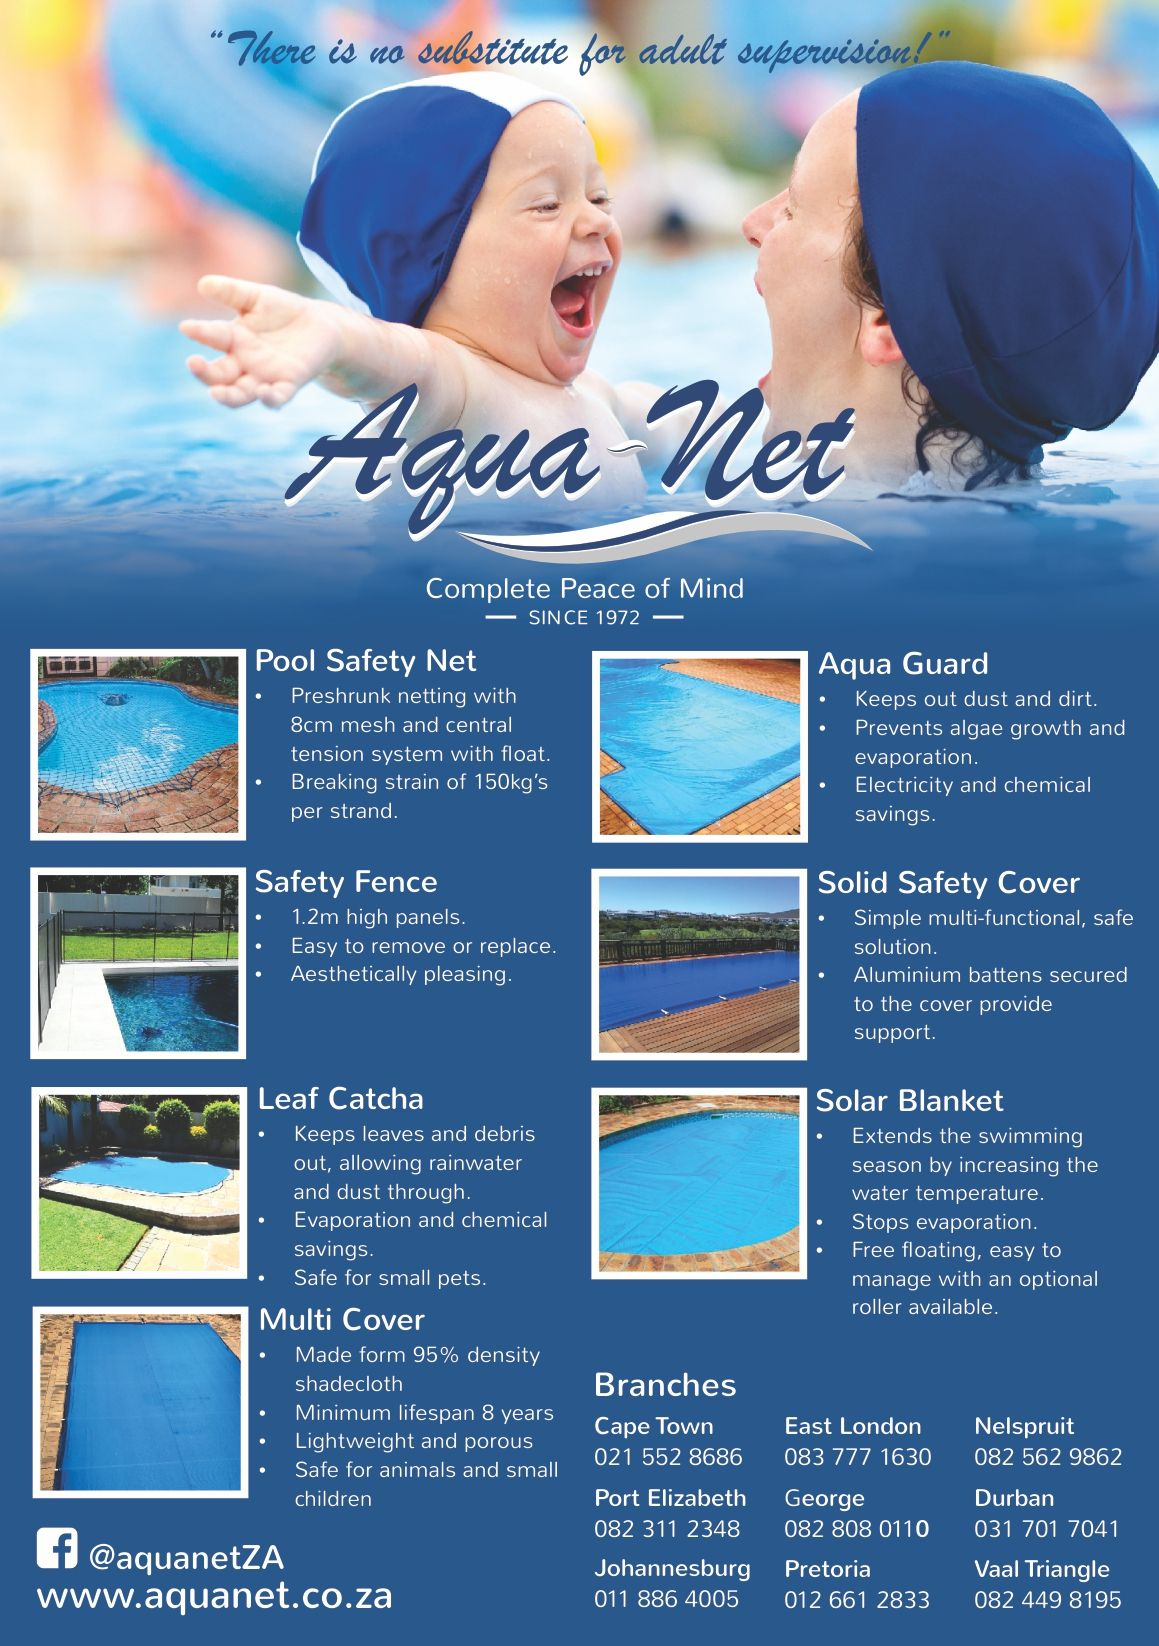 Cape Town A5 Flyer Pool safety net, Pool safety